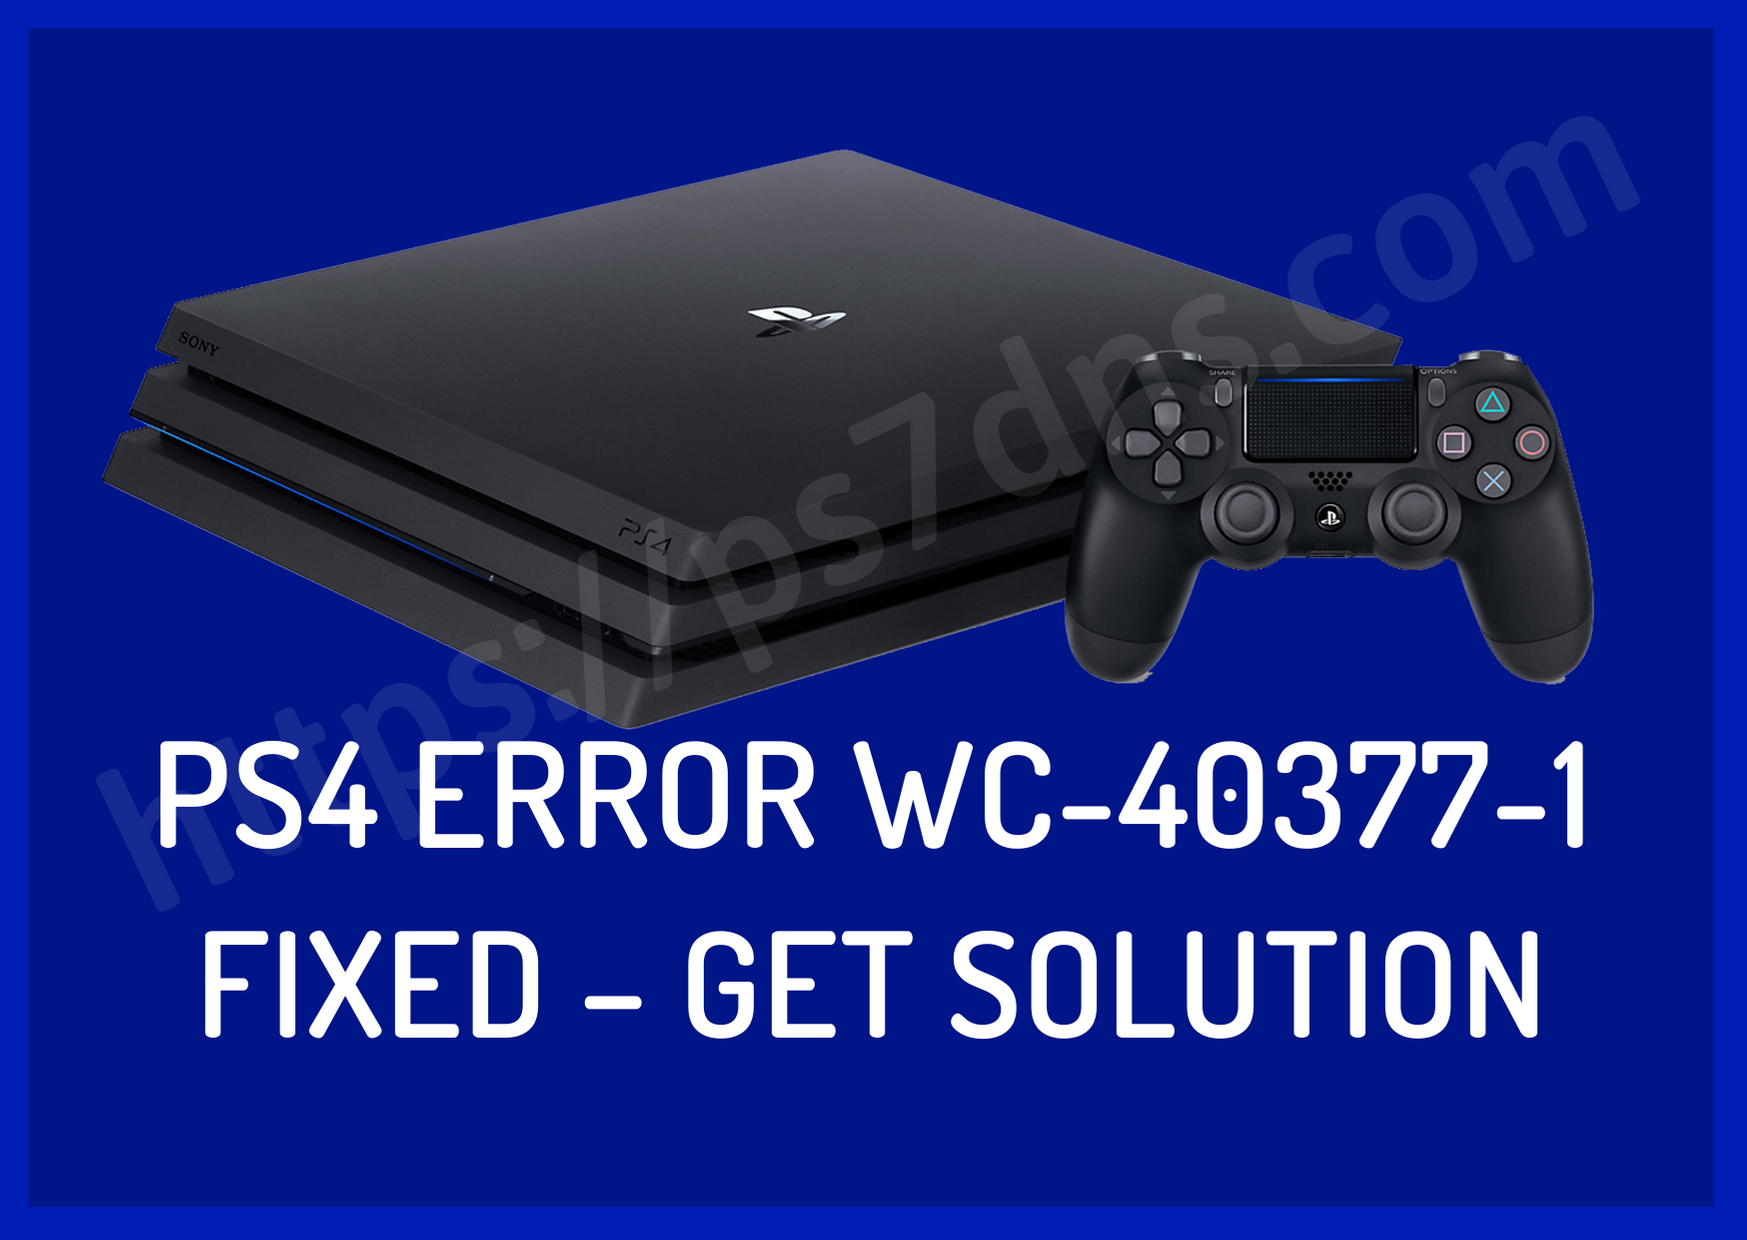 PS4 Error WC-40377-1 Fixed – Get Solution